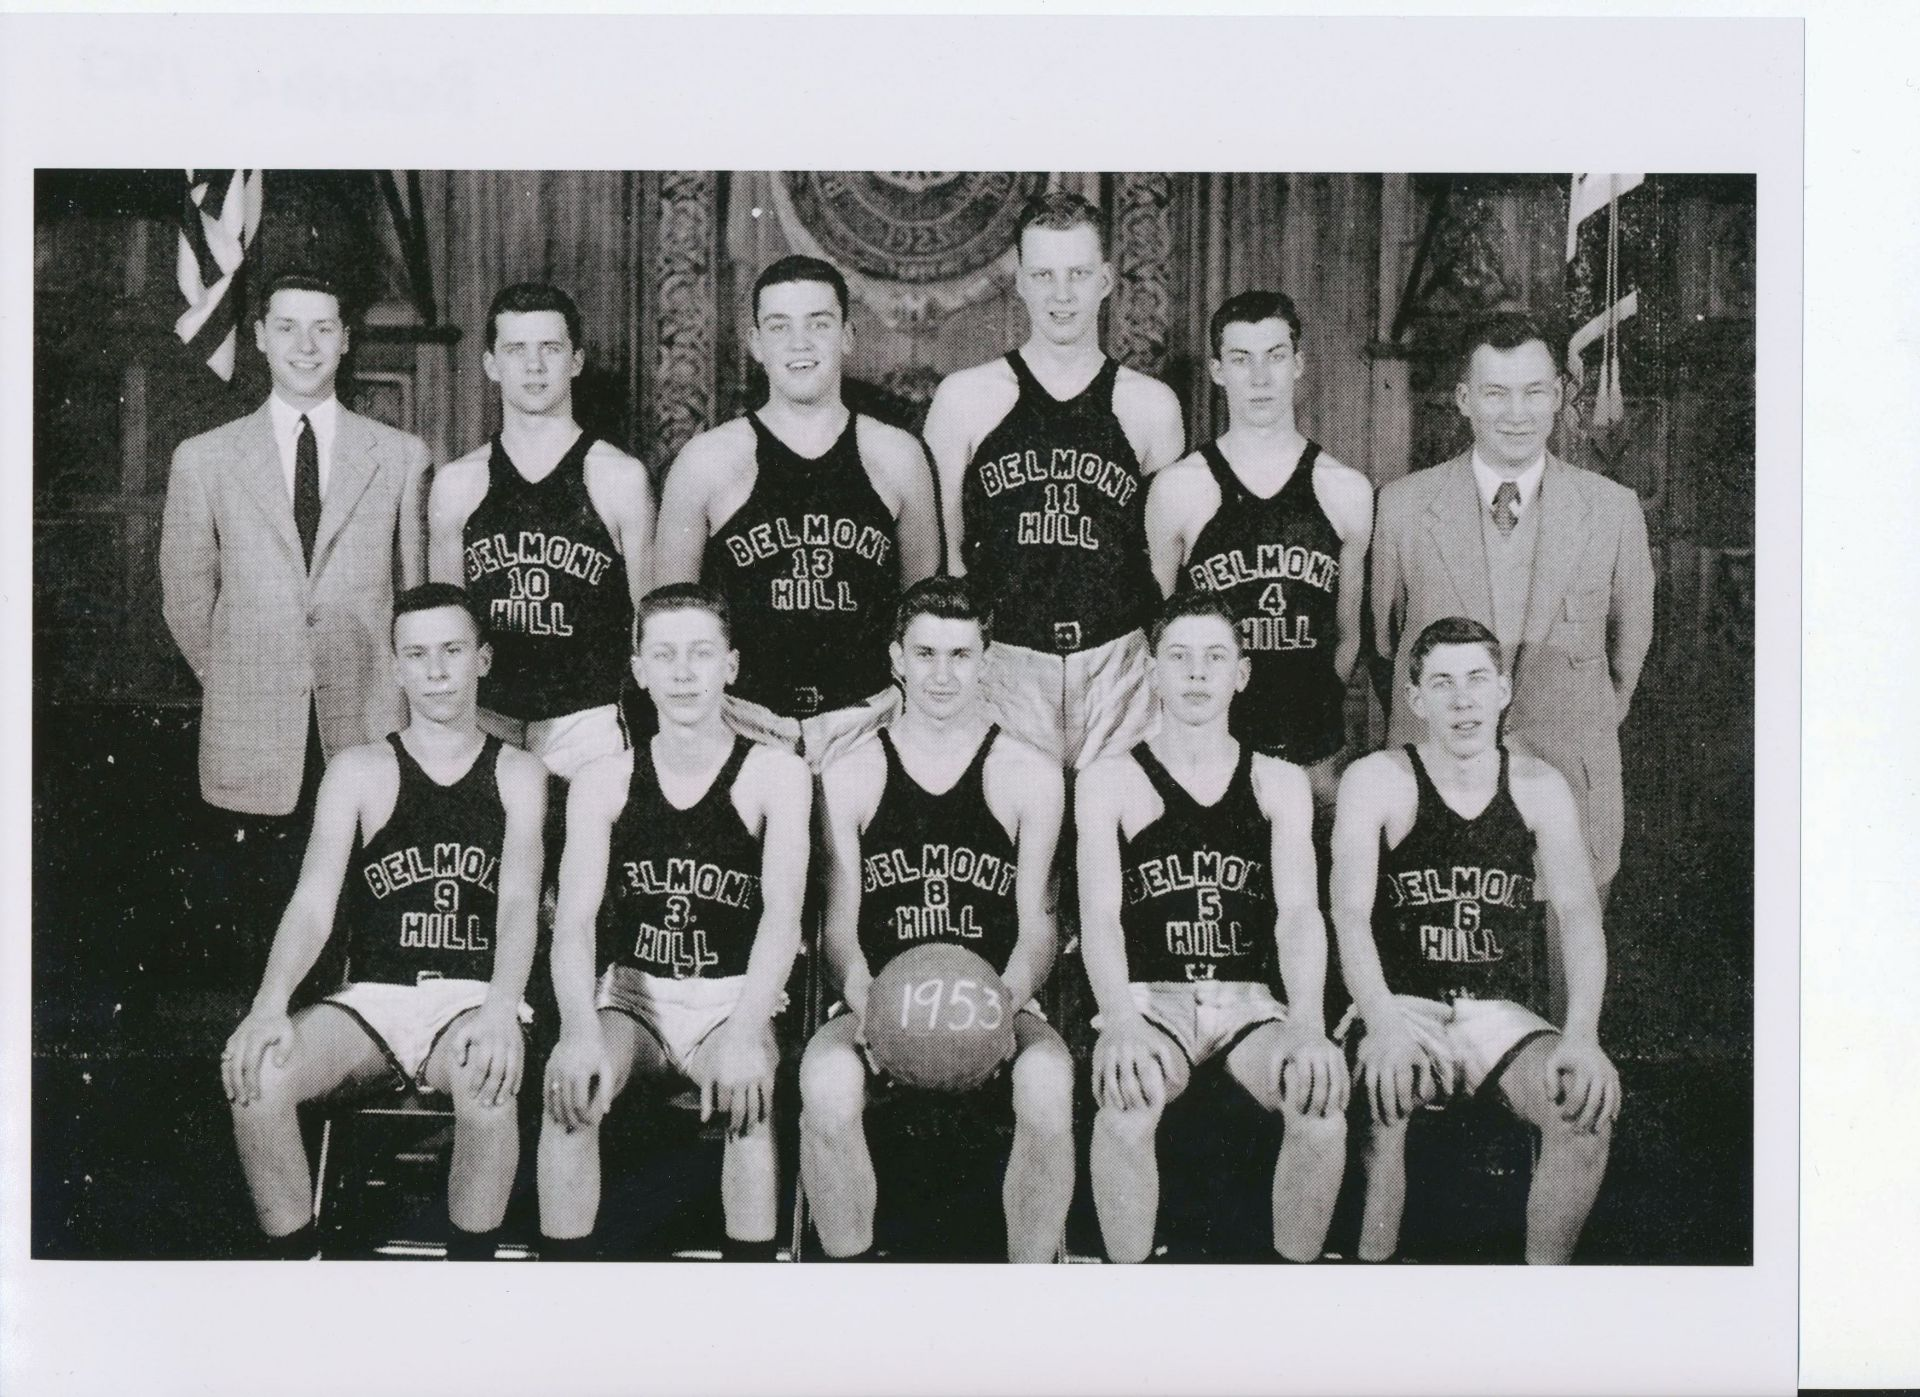 First Row: Goldman, R. Repetto, Captain Tosi, R. Repetto, Hathaway Second Row: Saunders, Meedhan,Meister, Rogers, R. MacArthur, Mr. Croke